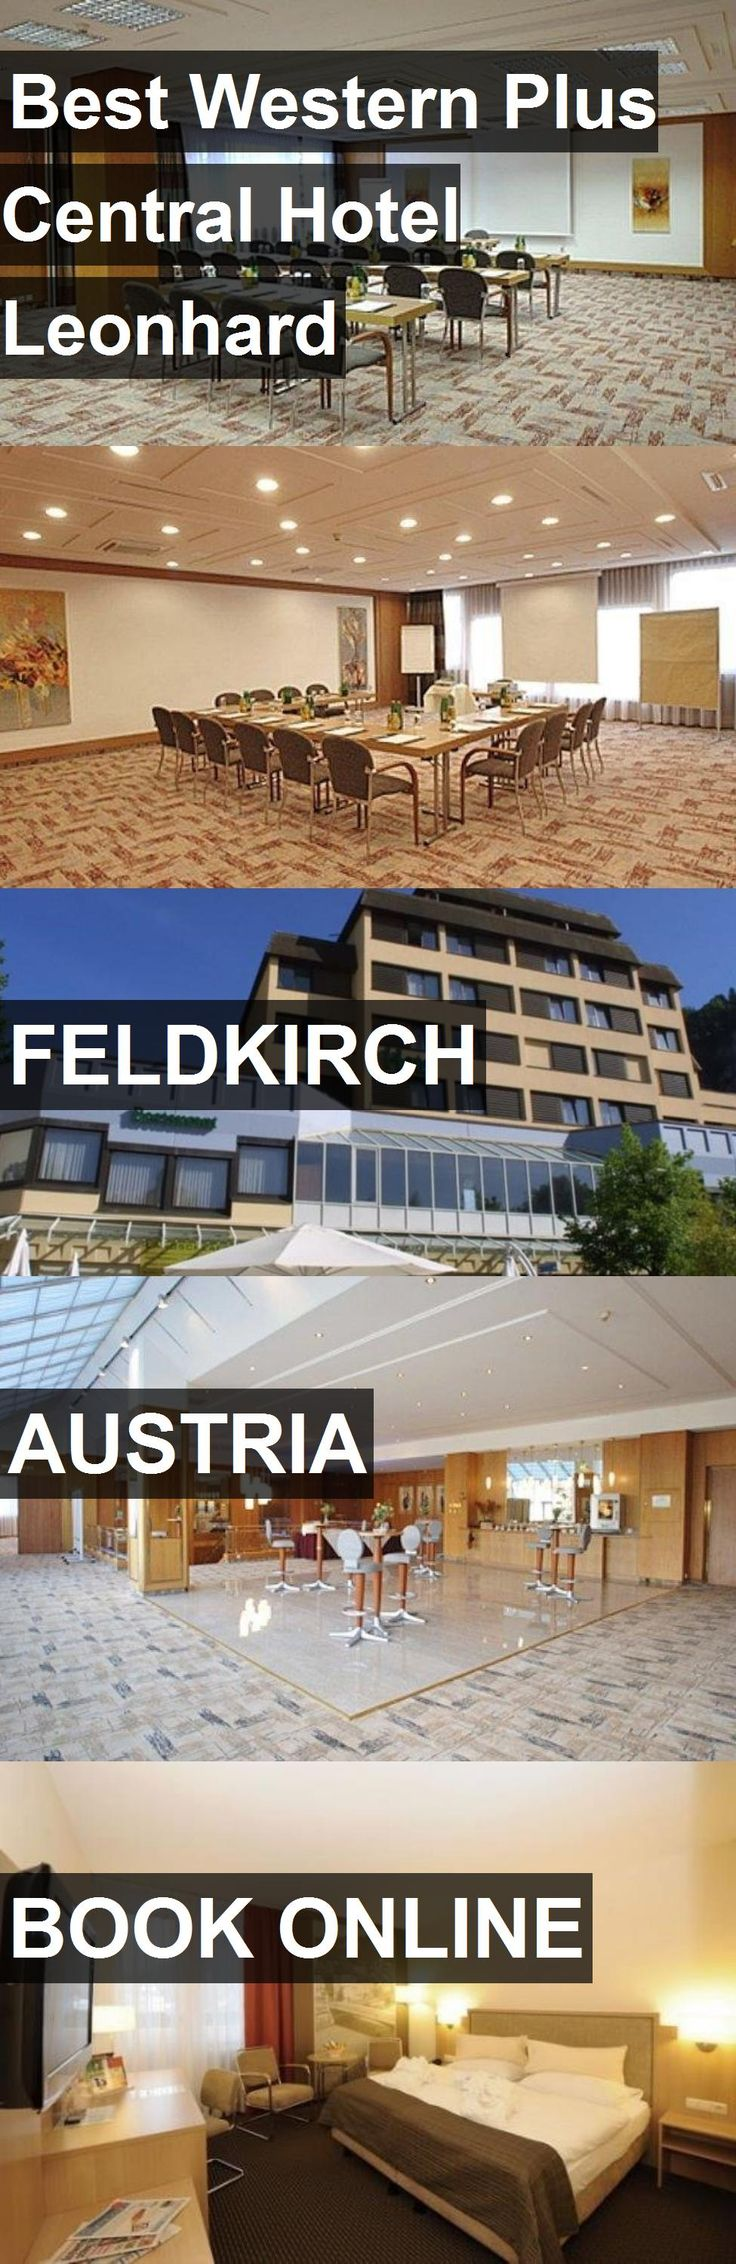 Hotel Best Western Plus Central Hotel Leonhard in Feldkirch, Austria. For more information, photos, reviews and best prices please follow the link. #Austria #Feldkirch #BestWesternPlusCentralHotelLeonhard #hotel #travel #vacation